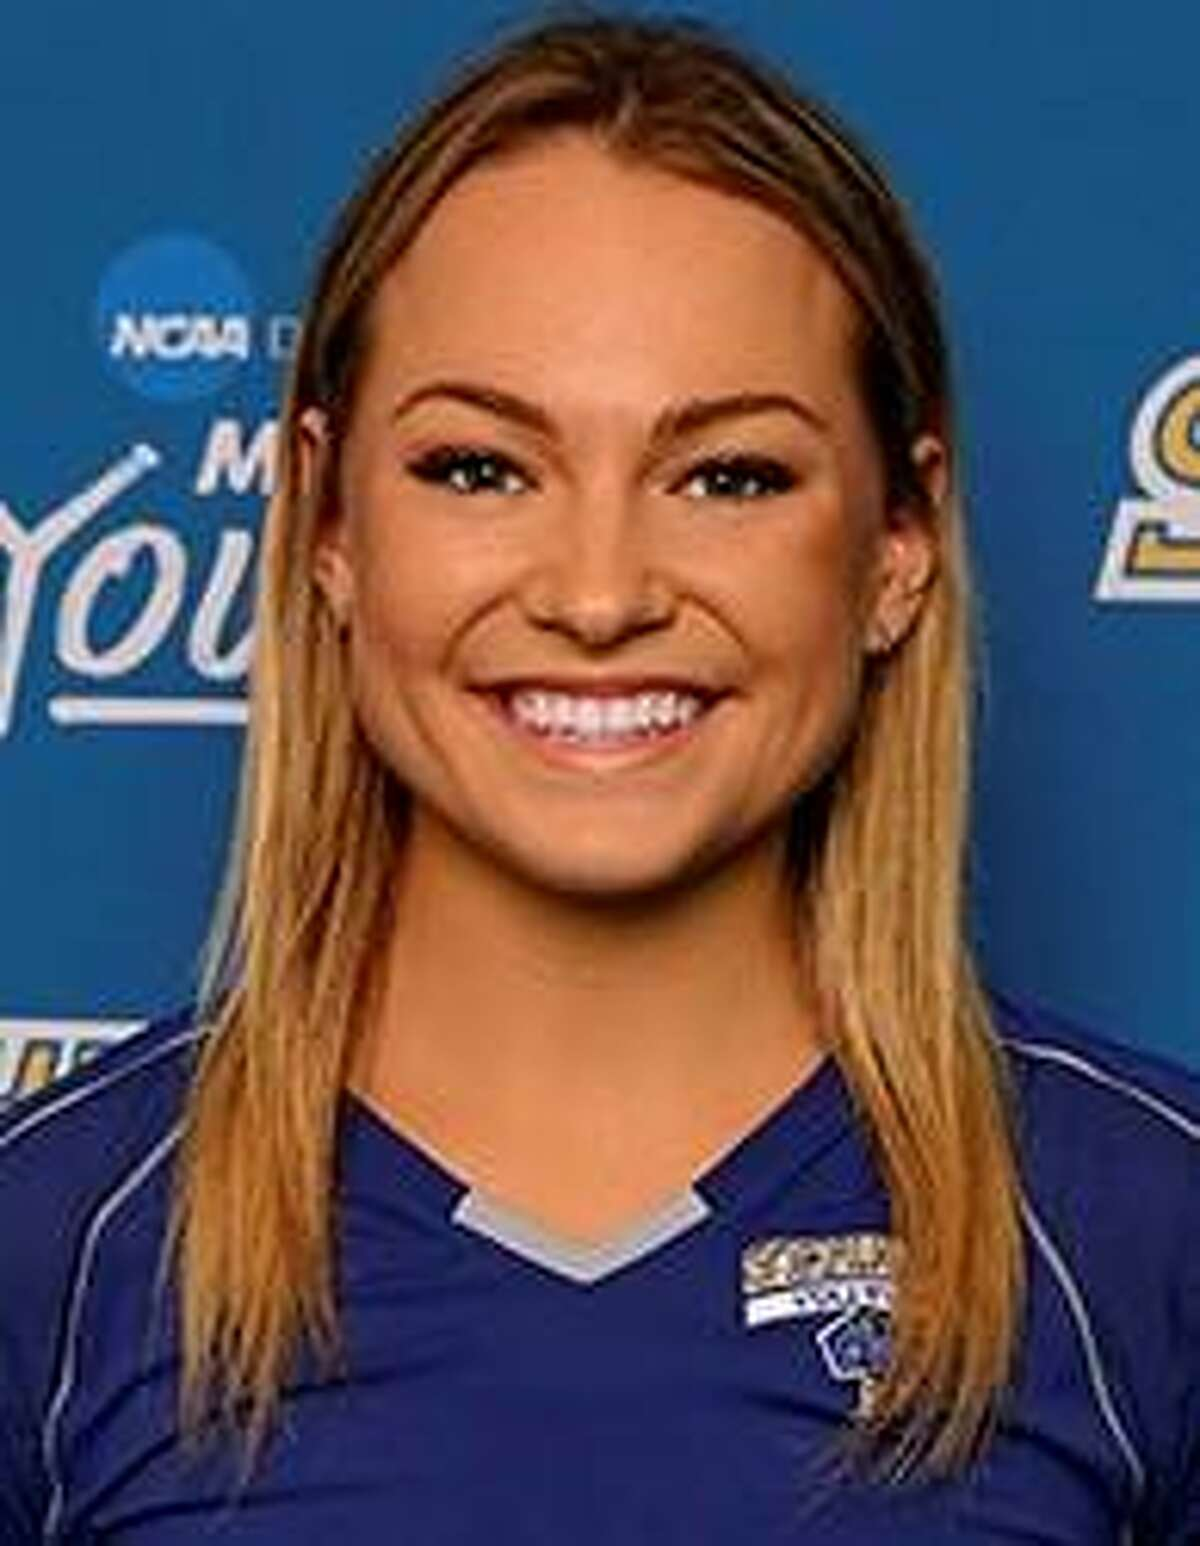 Katy graduate and St. Mary's University junior Channing Hankins earned first-team all-Heartland Conference honors with 373 kills, 76 digs and 37 blocks in 30 matches. She posted 26 in seven sets as the Rattlers won the conference tournament.